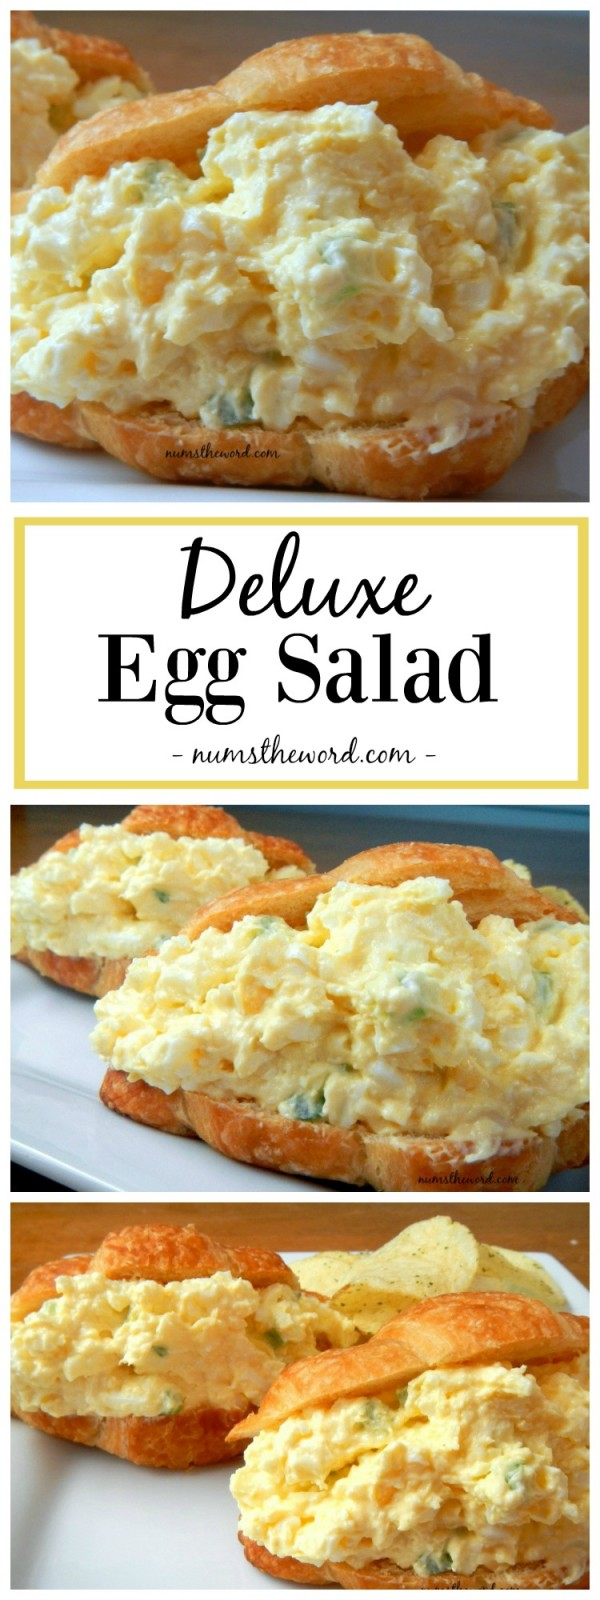 Get the recipe Deluxe Egg Salad @recipes_to_go